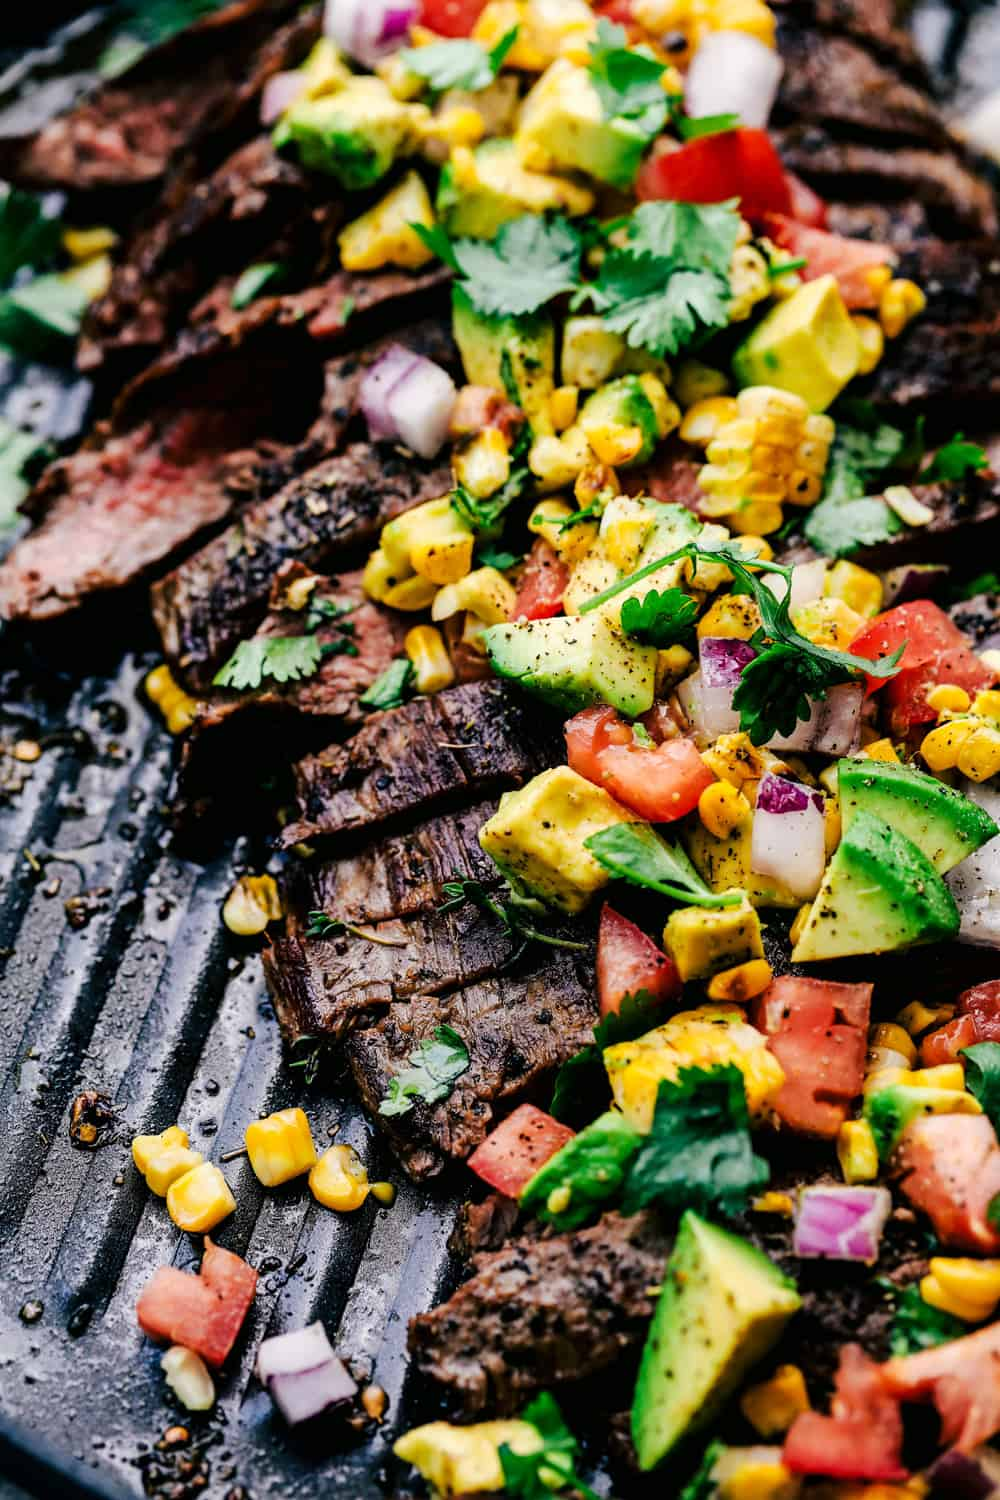 Grilled flank steak on a skillet.